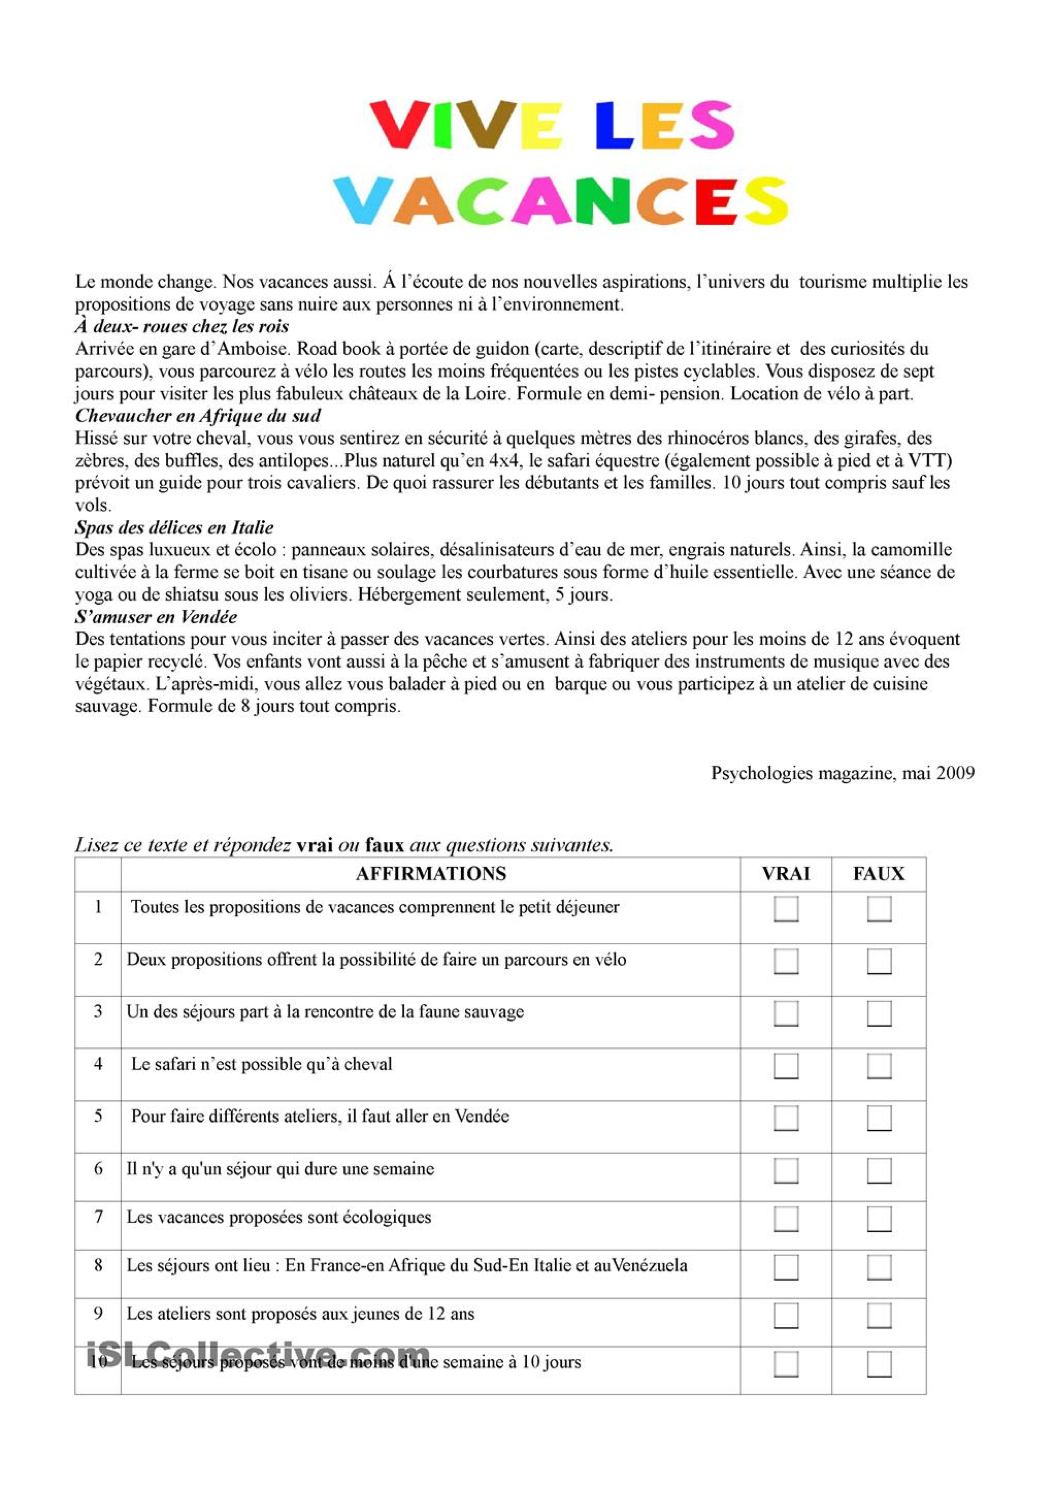 french essay on saisons en france Find an answer to your question essay on seasons in france in french.